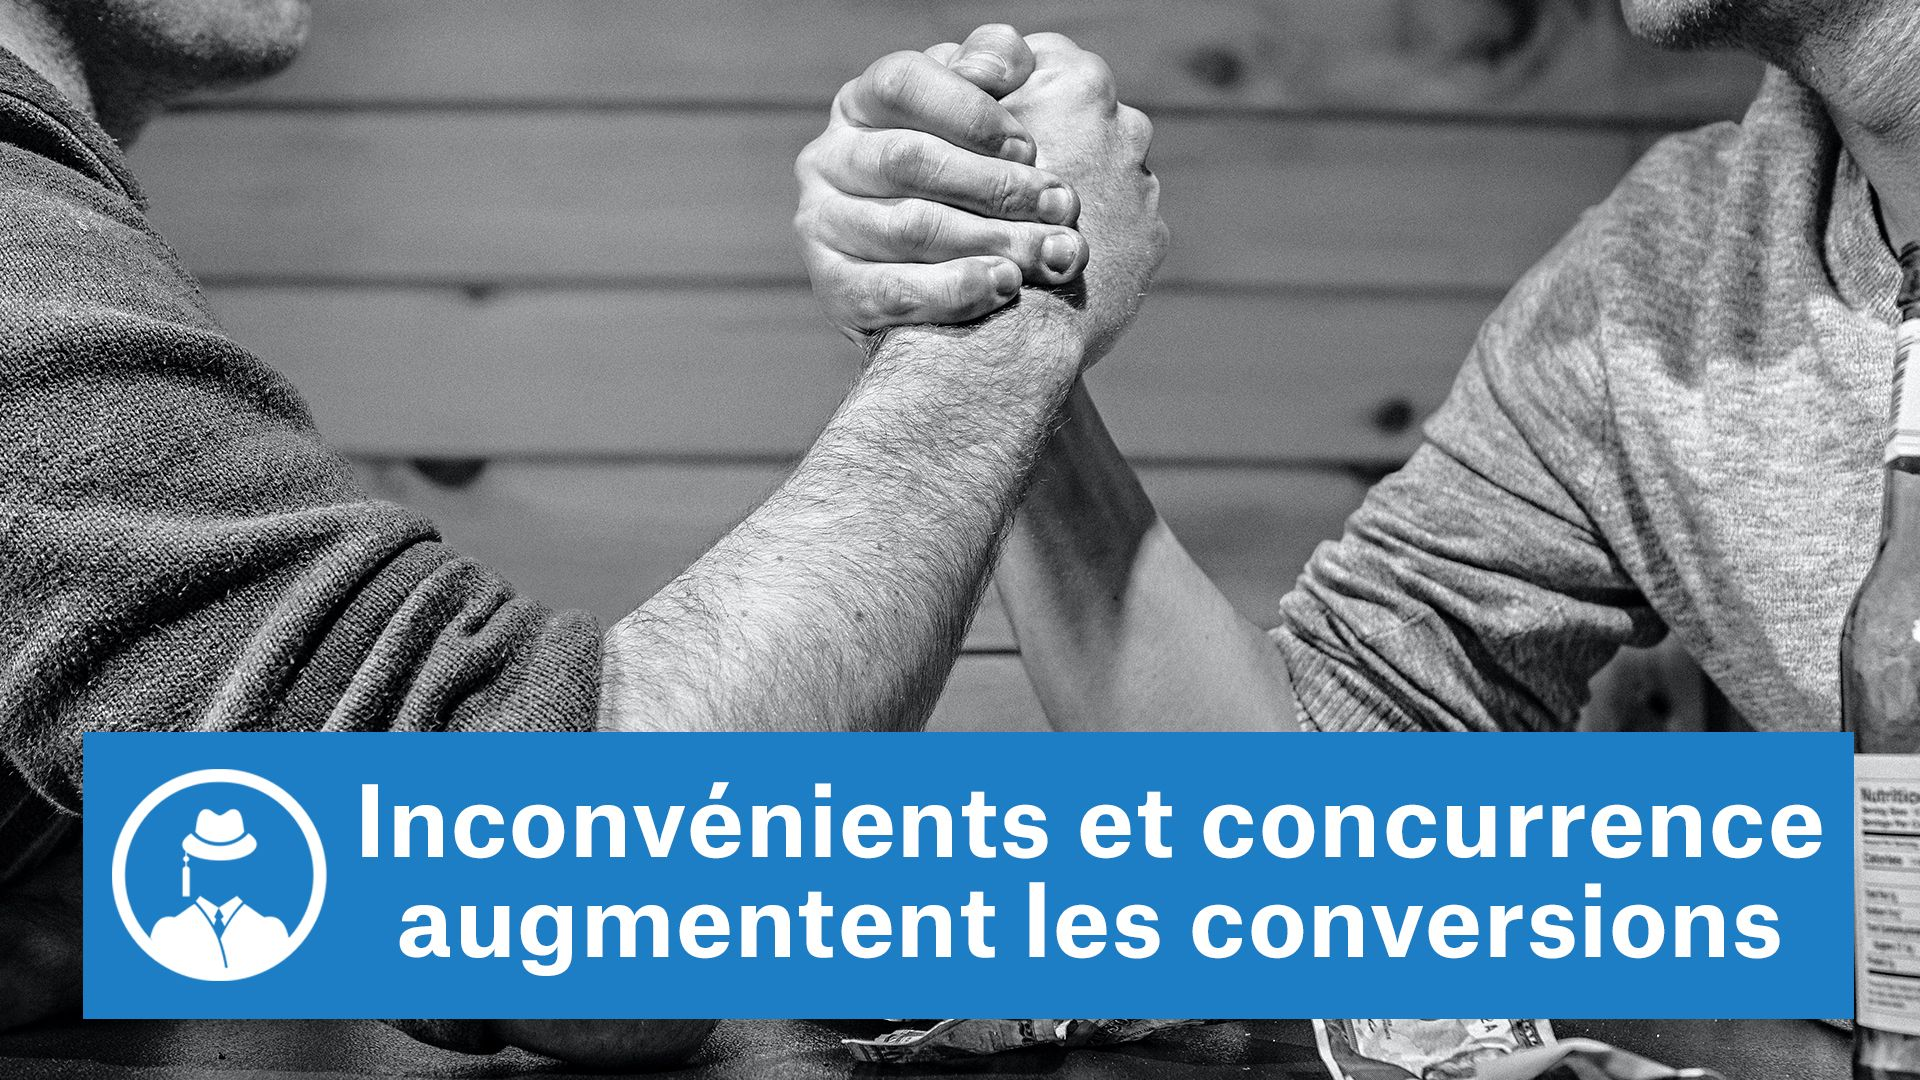 Inconvénients et concurrence augmentent les conversions #GrowthHacking #WebMarketing #FormationGrowthHacking #CentreDeFormationFrance #TunnelAARRR #AARRR #SocialMedia #CommunityManagement #SEO #MarketingDigital #SiteWeb